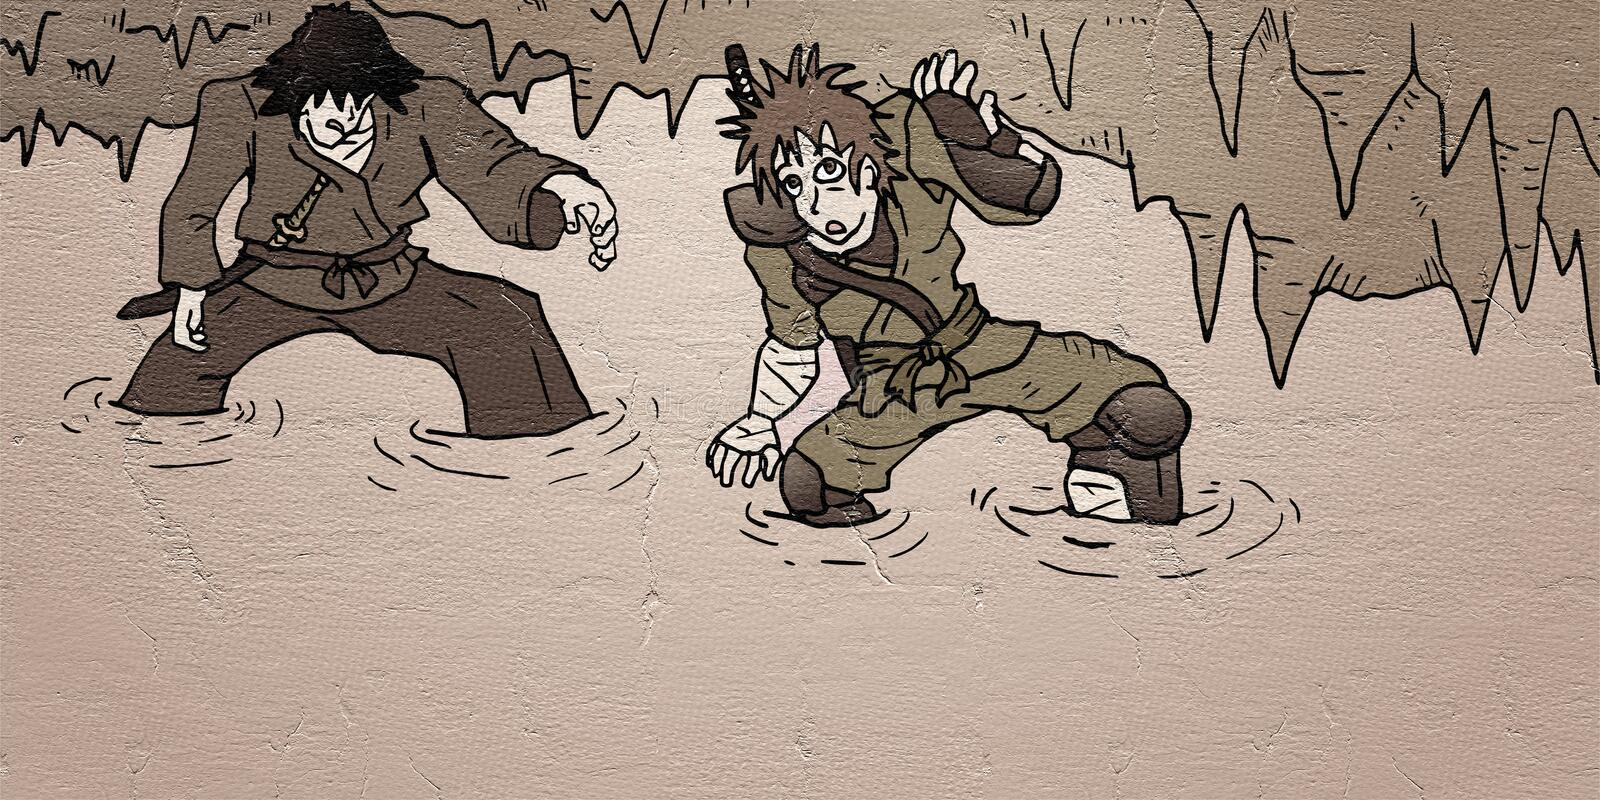 Mystery cavern. Two characters in mystery cavern royalty free illustration